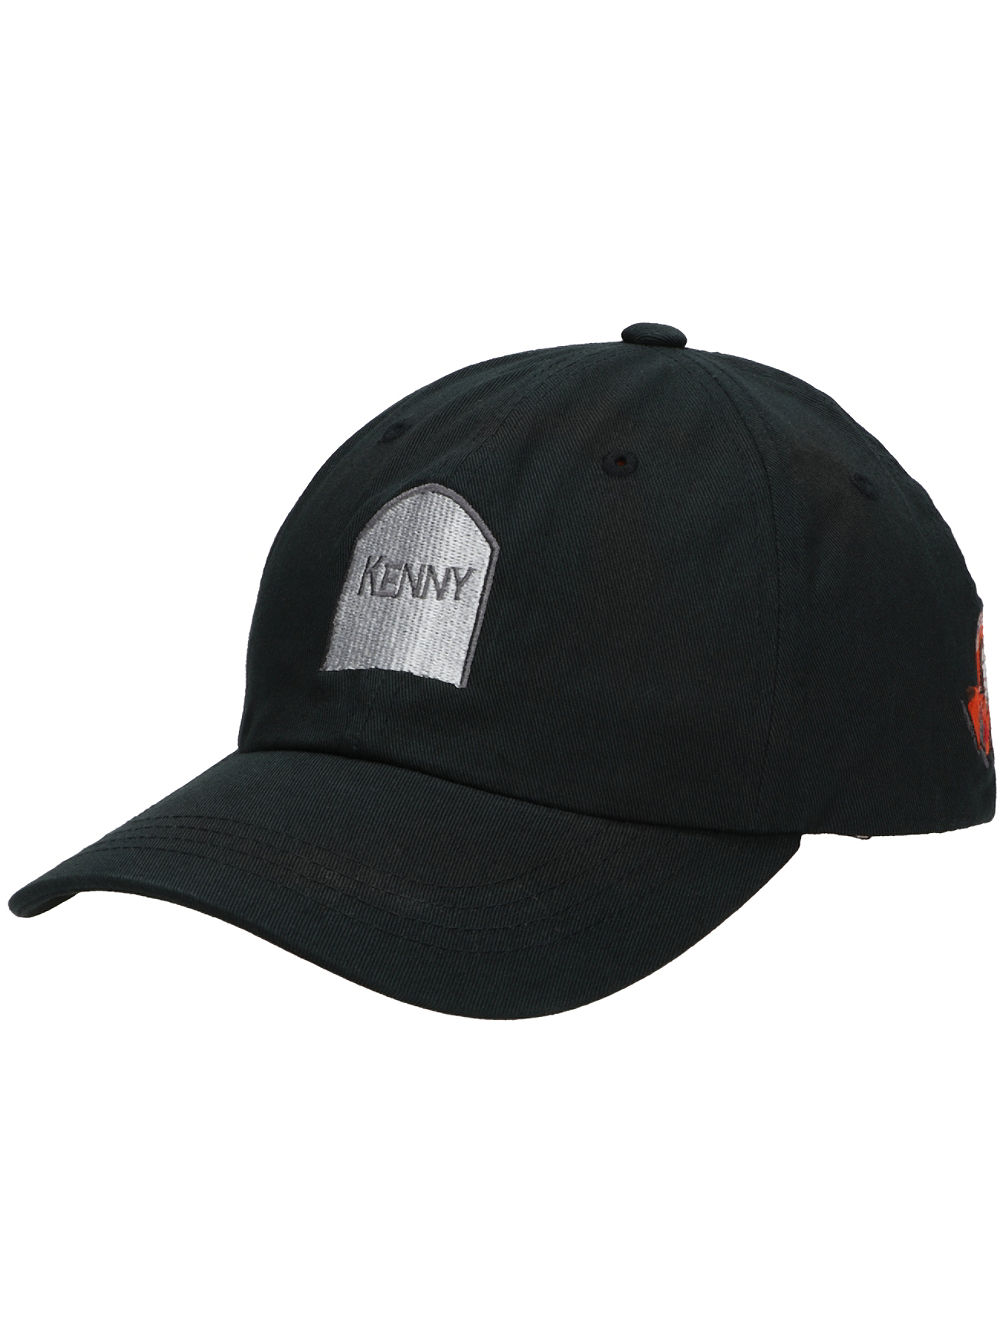 X Southpark Dead Kenny Curved Brim Cap